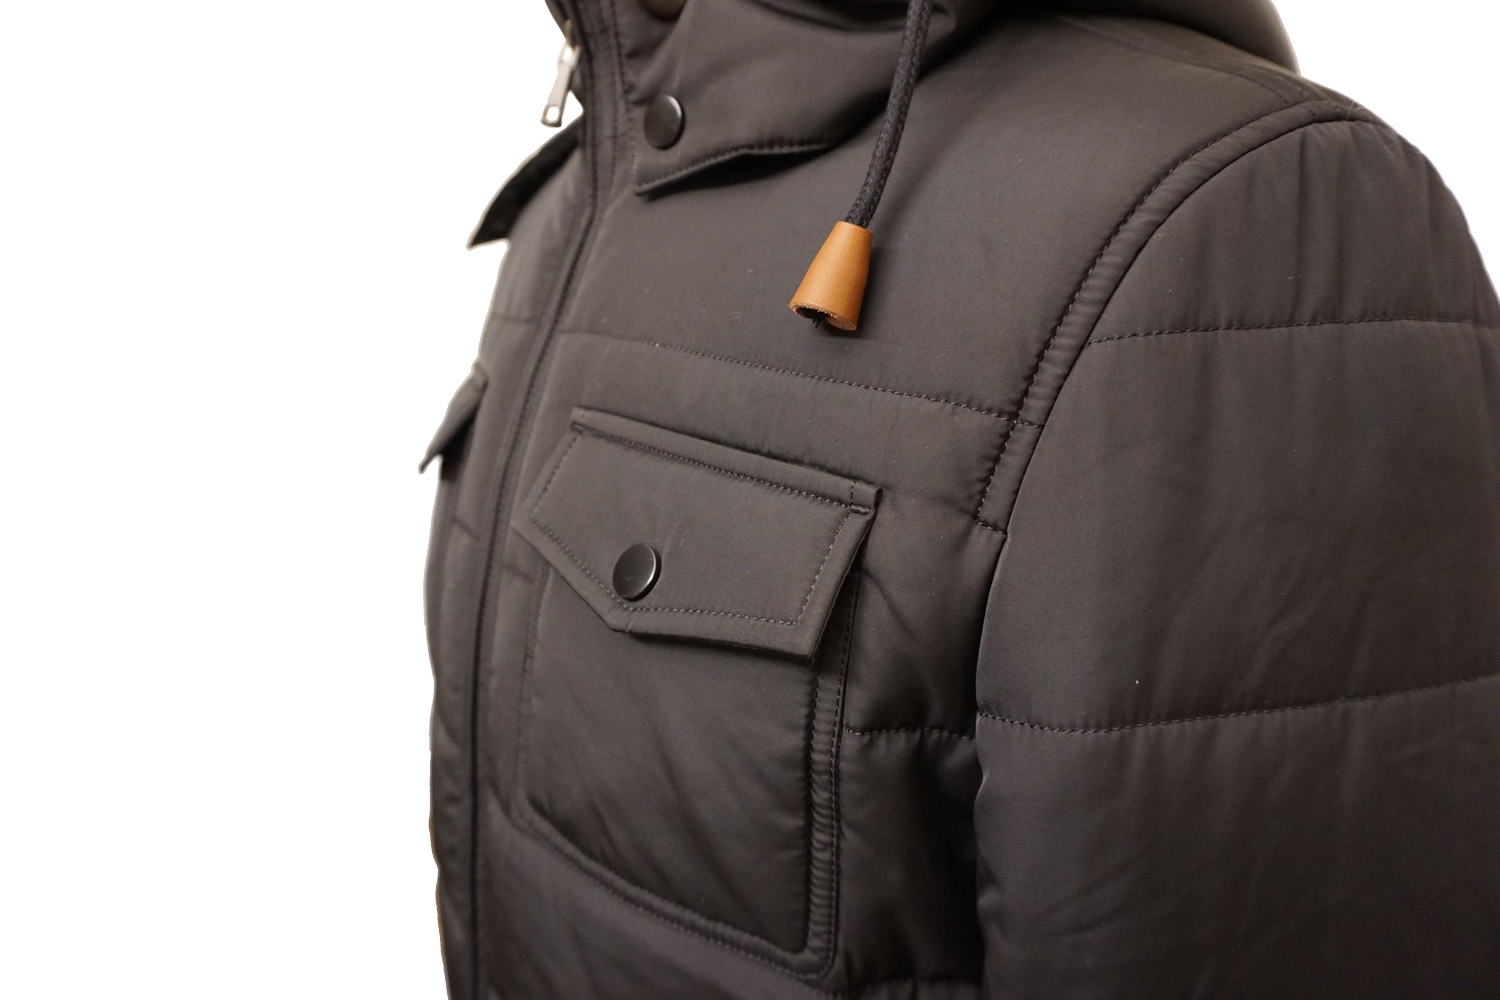 Black-Insulated-Jacket-Sample-2.jpg